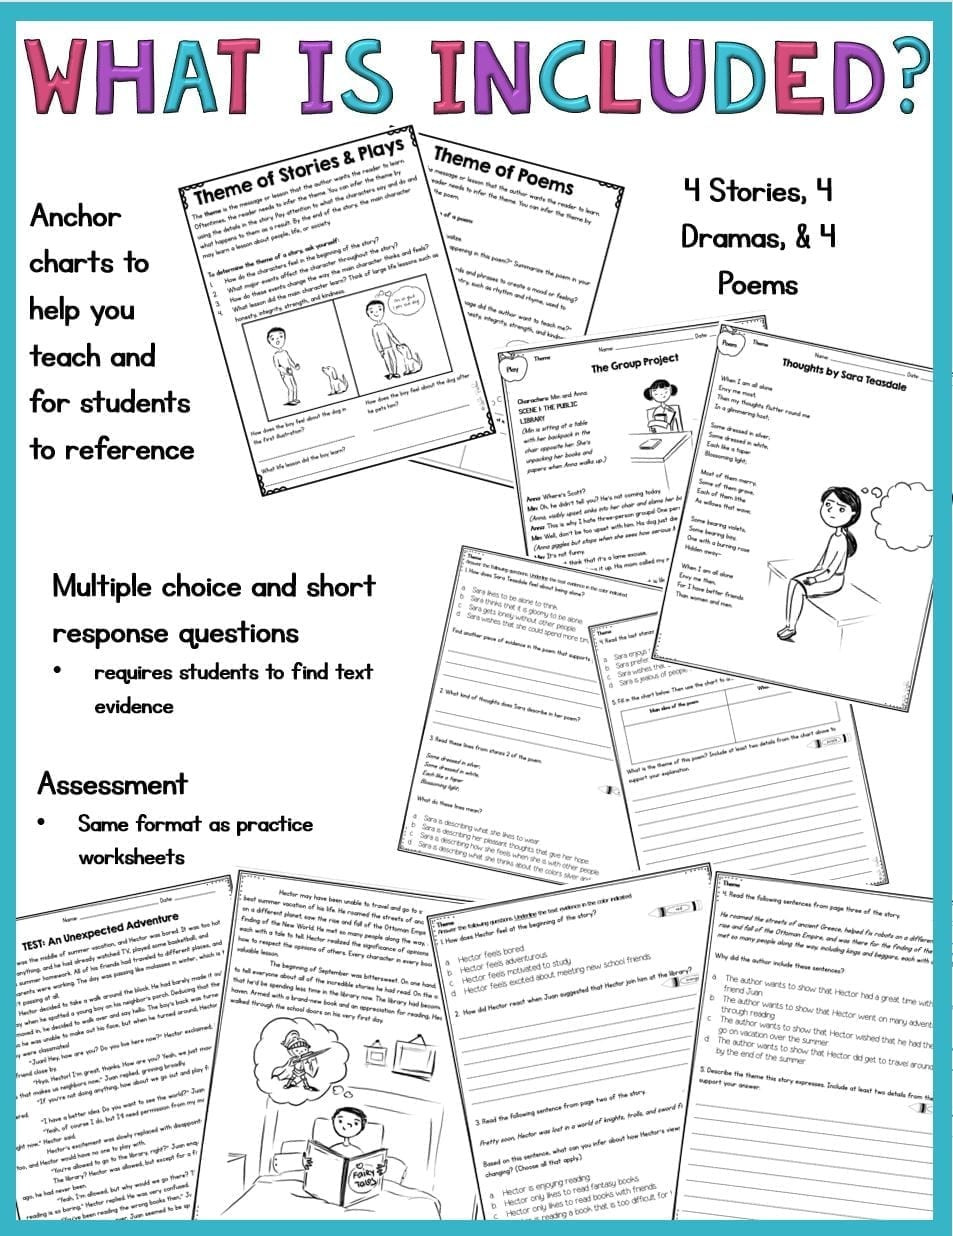 Theme Worksheets 5th Grade theme In Stories Plays and Poems 4th Grade Rl 4 2 and 5th Grade Rl 5 2